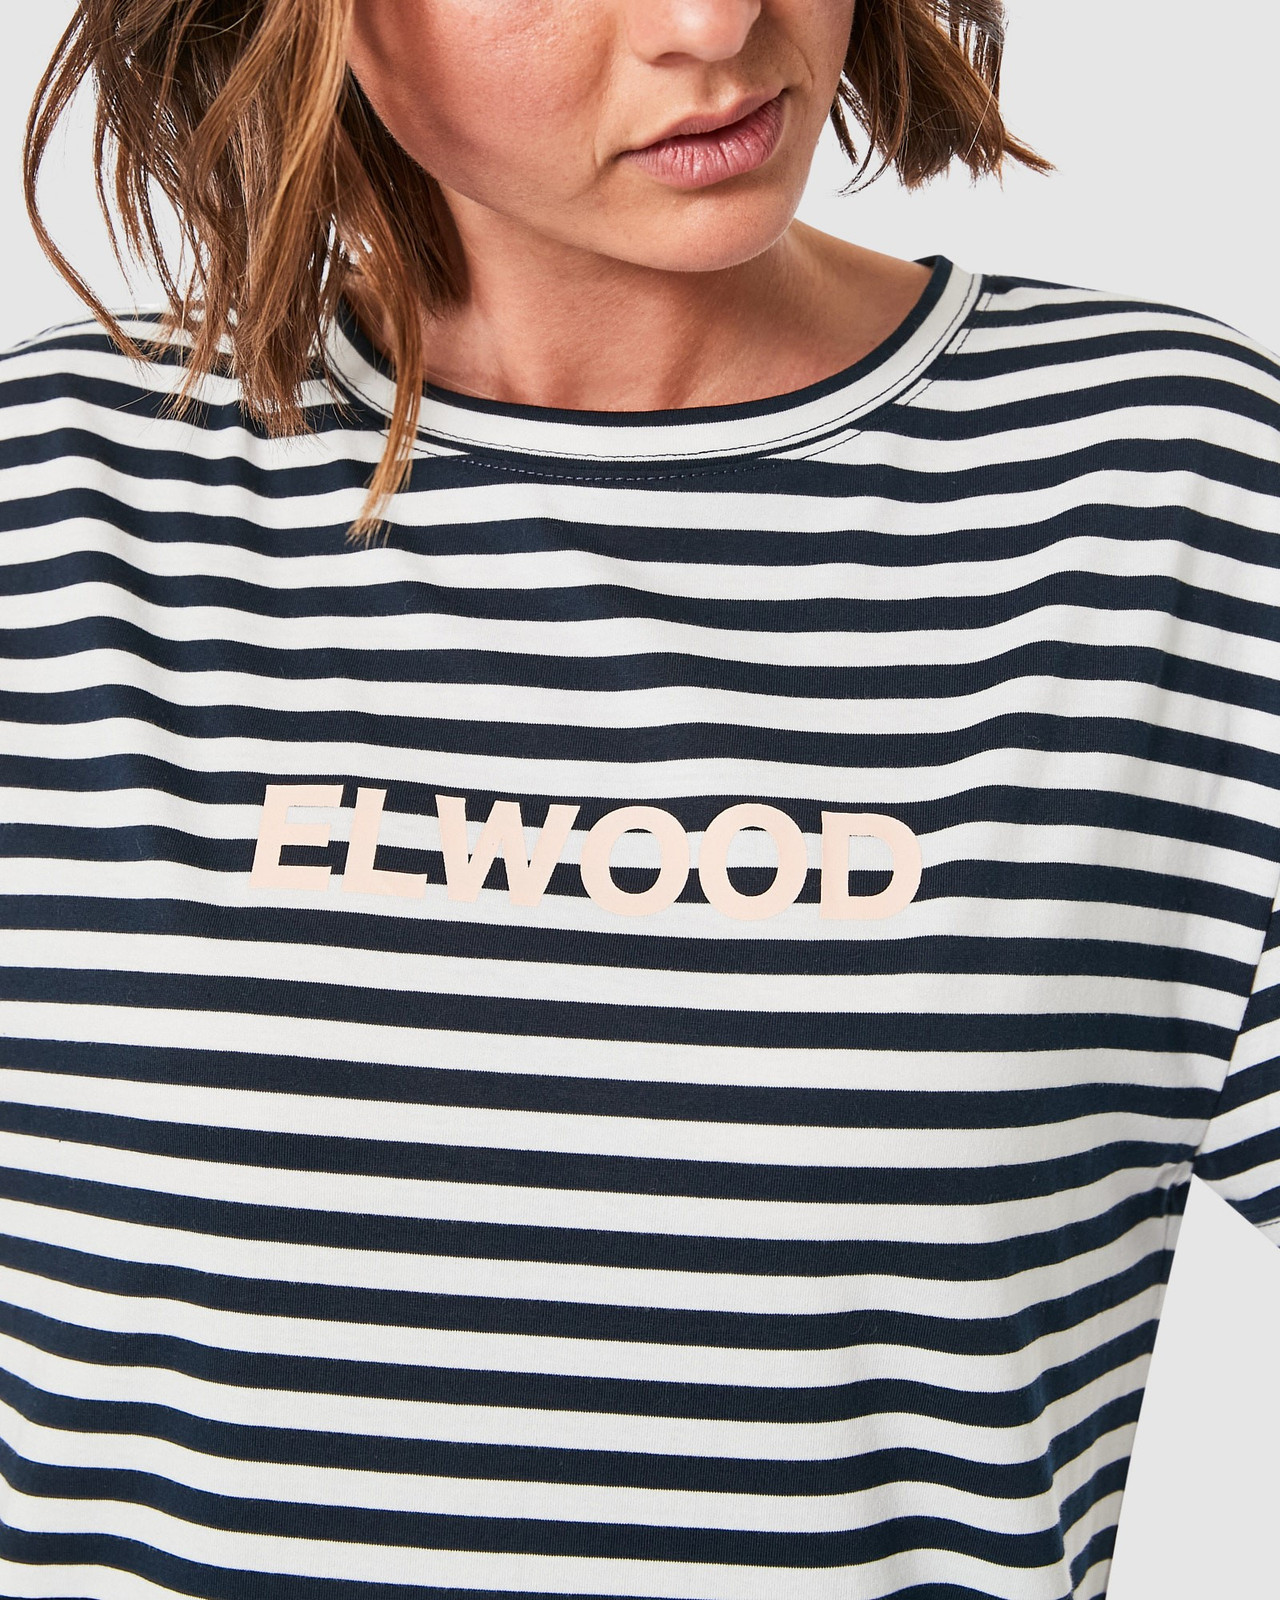 Elwood Womens Ally Dress Navy